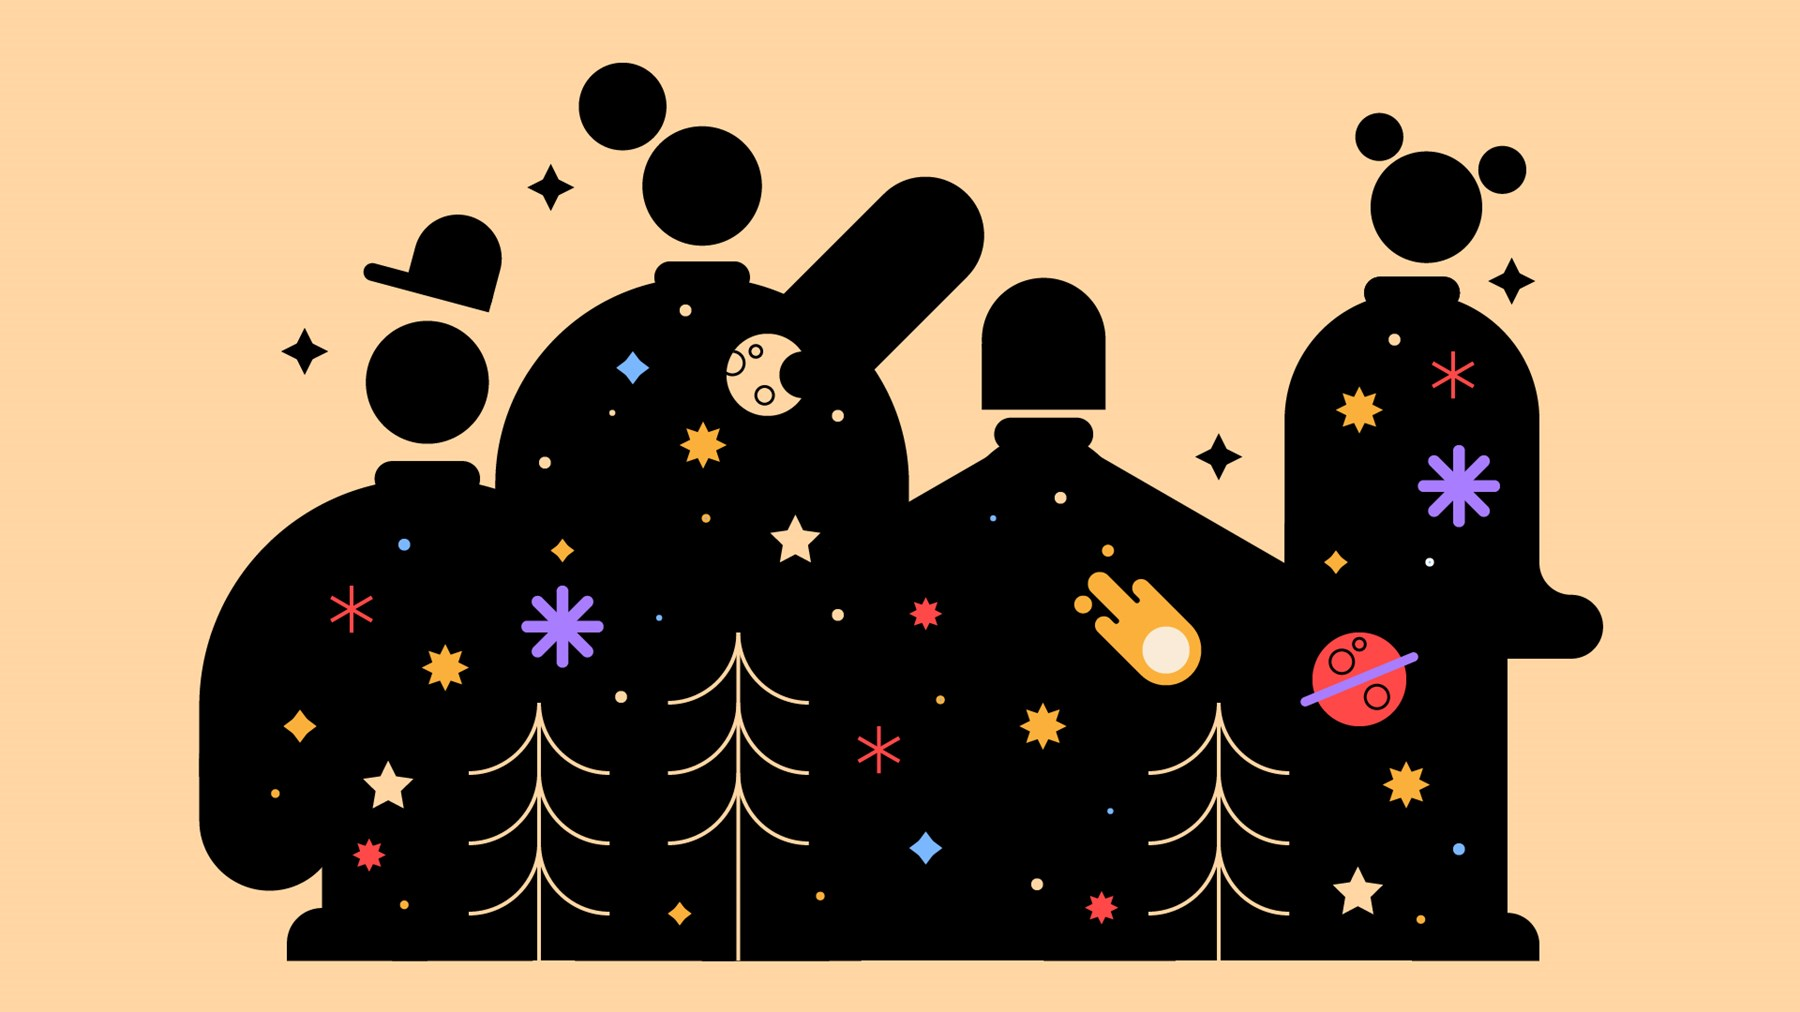 The silhouettes of four Scouts filled with the magical wonders the night sky has to offer; including stars, moons and planets.